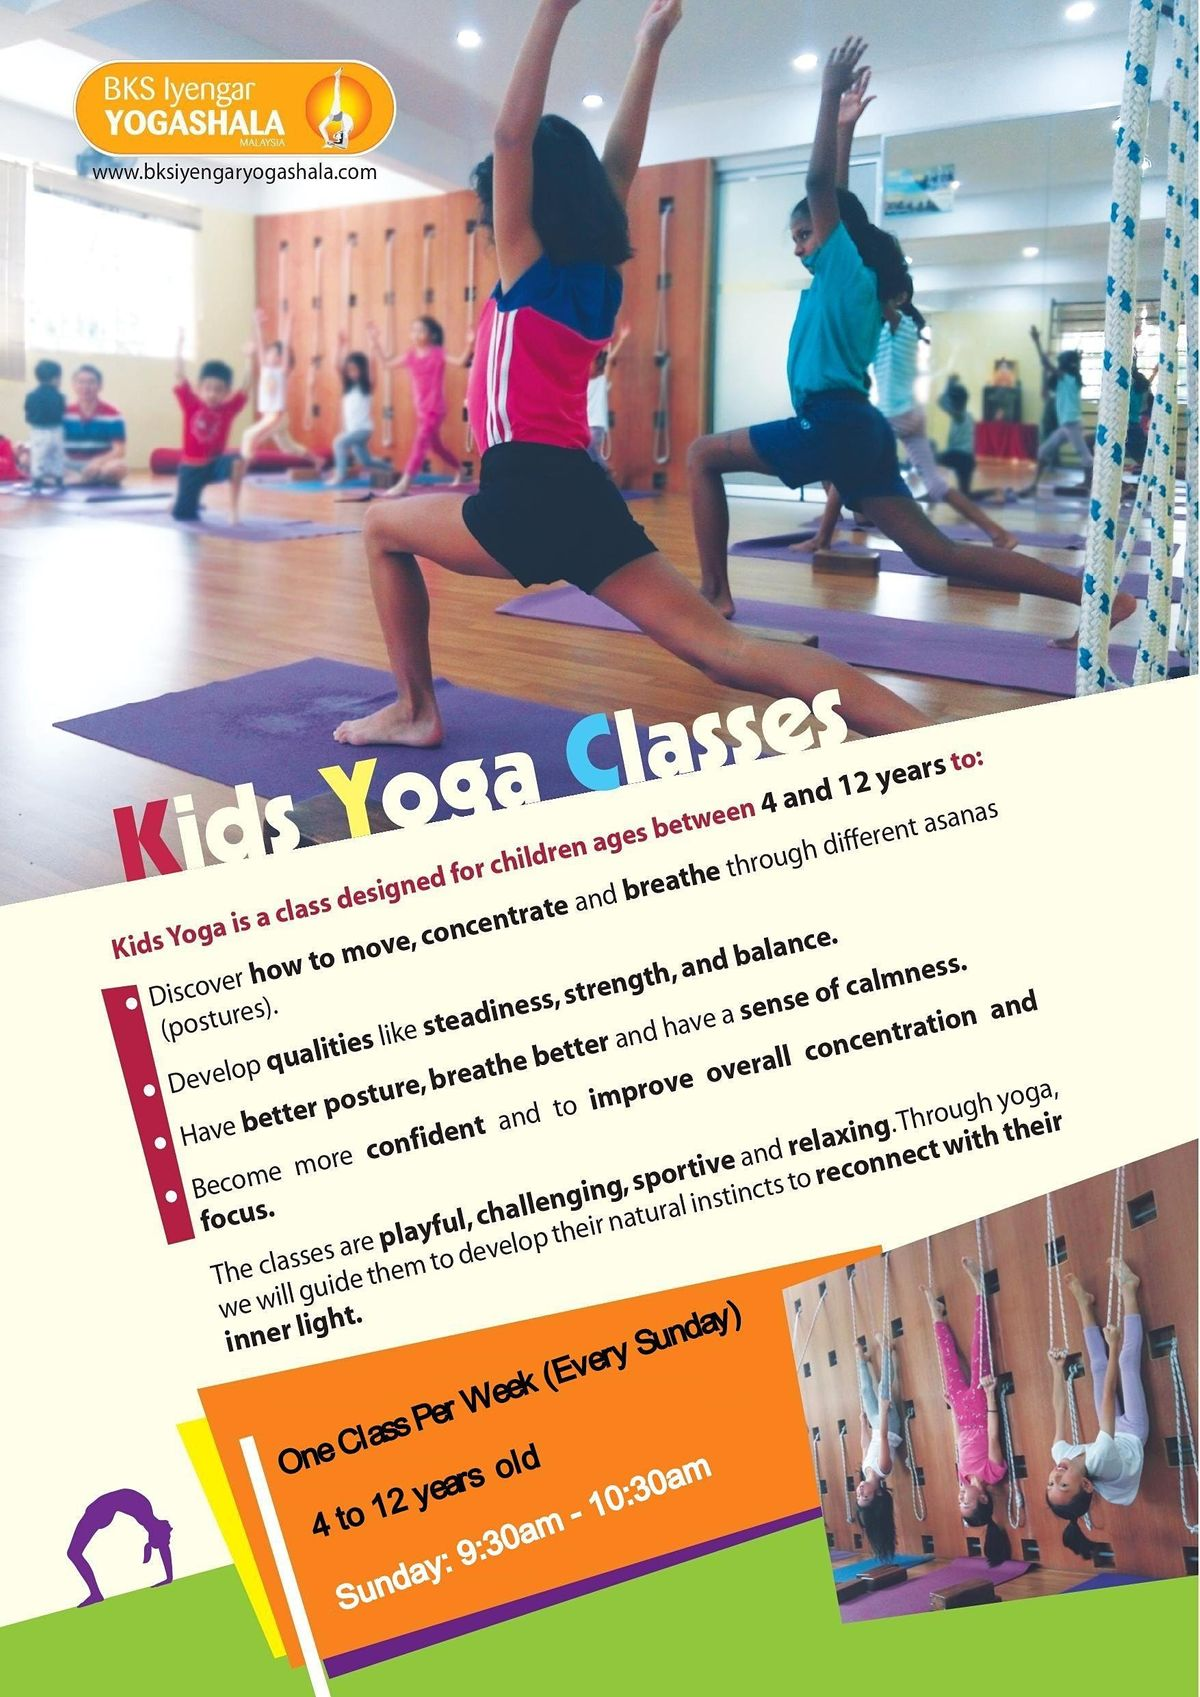 Yoga for Kids (Iyengar Yoga)